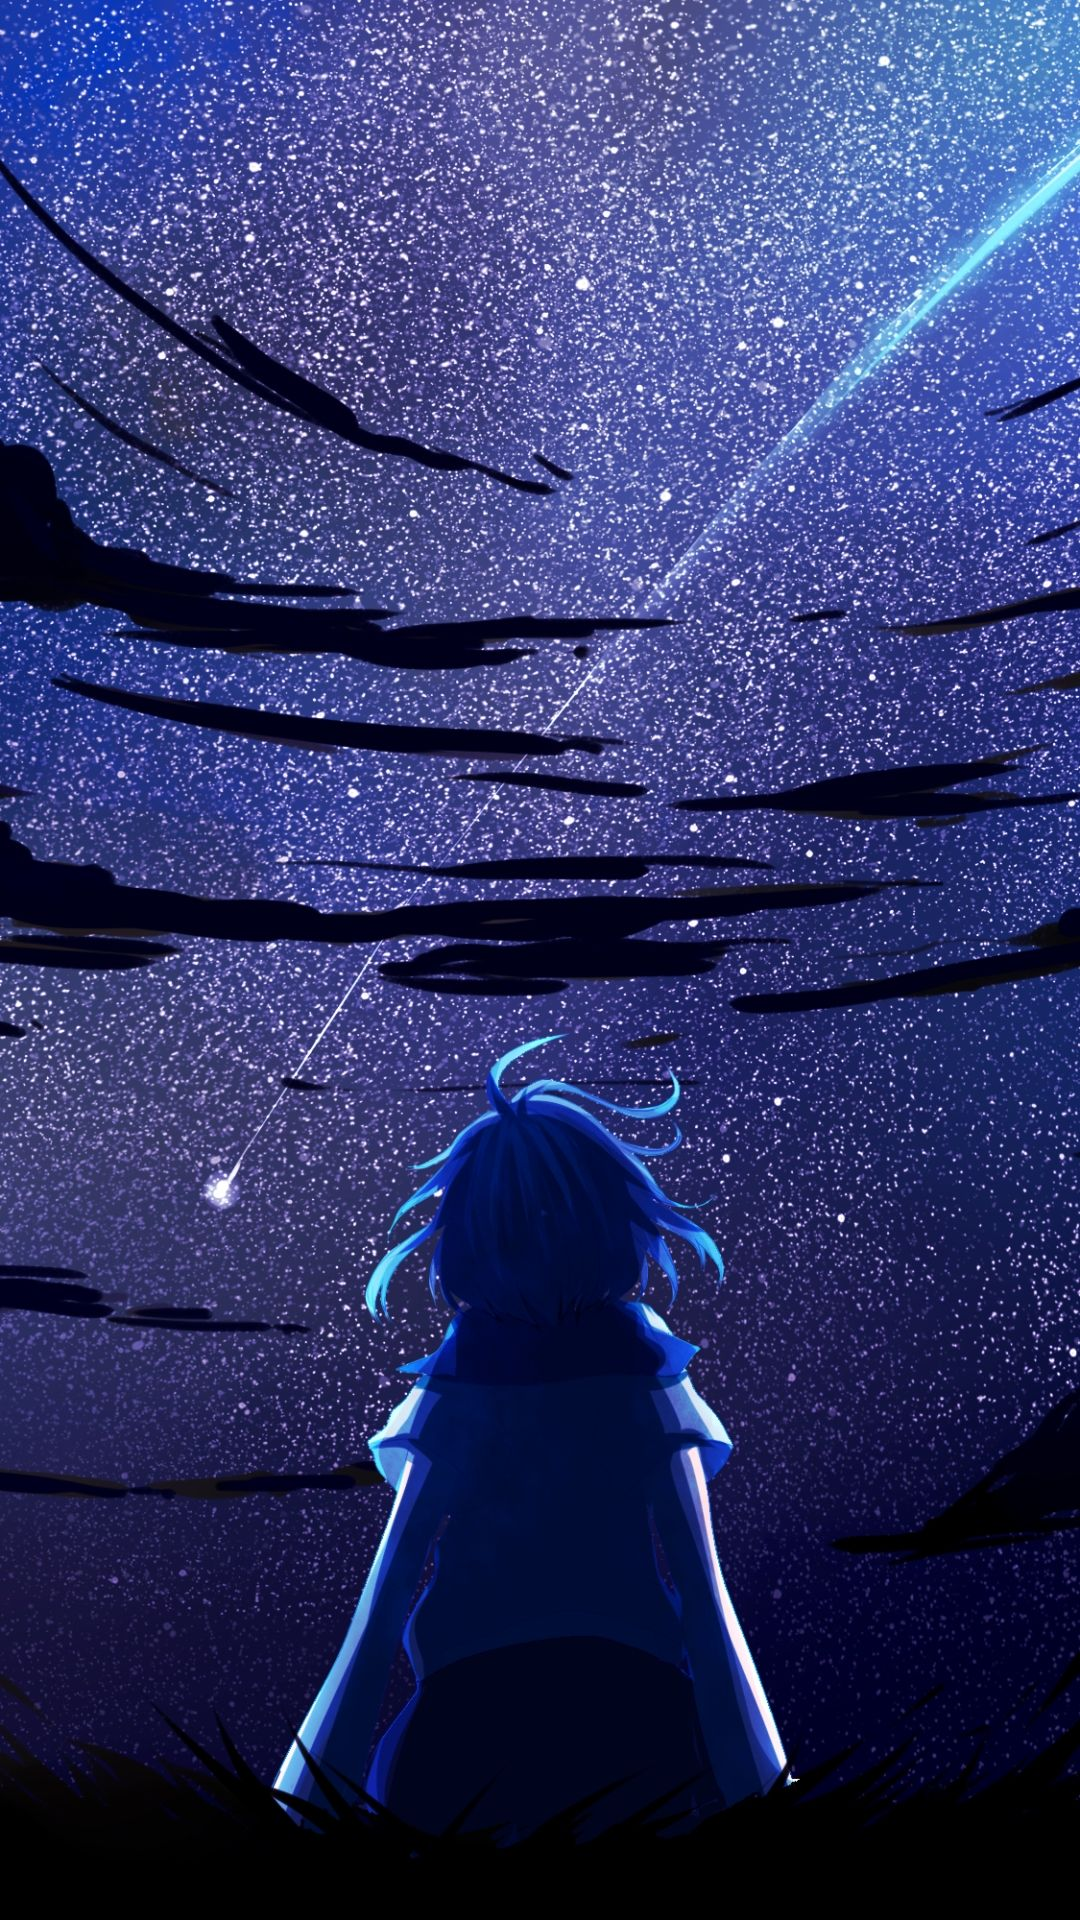 Sad Anime iPhone Wallpapers (43 images) - WallpaperBoat